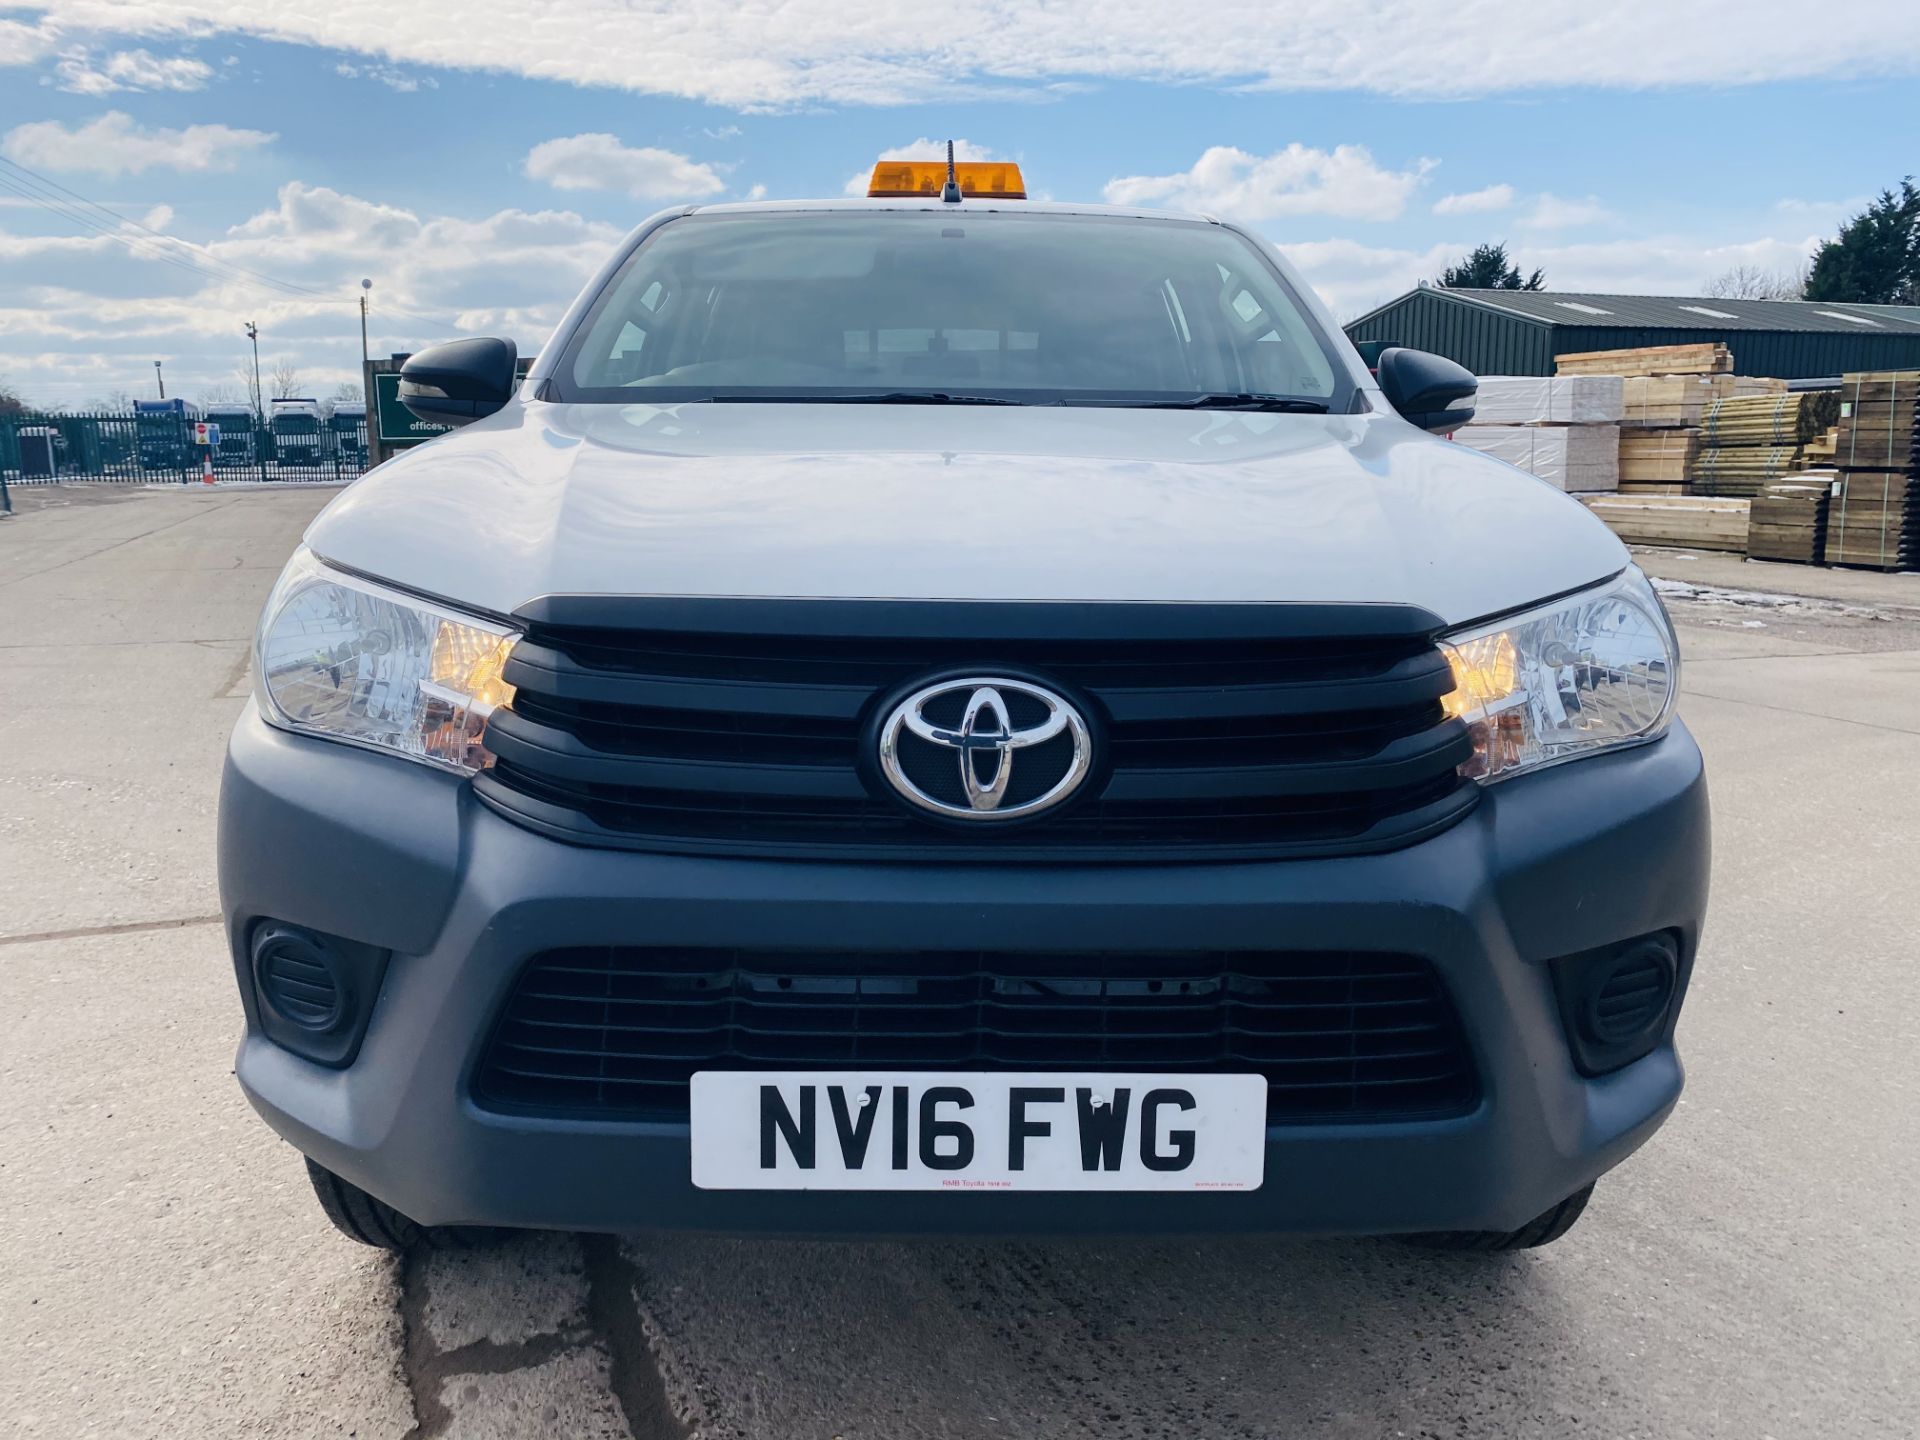 """TOYOTA HILUX """"ACTIVE"""" DOUBLE CAB PICK-UP (2016 - NEW MODEL) 1 OWNER - AIR CON - REAR CANOPY- LOOK - Image 3 of 19"""